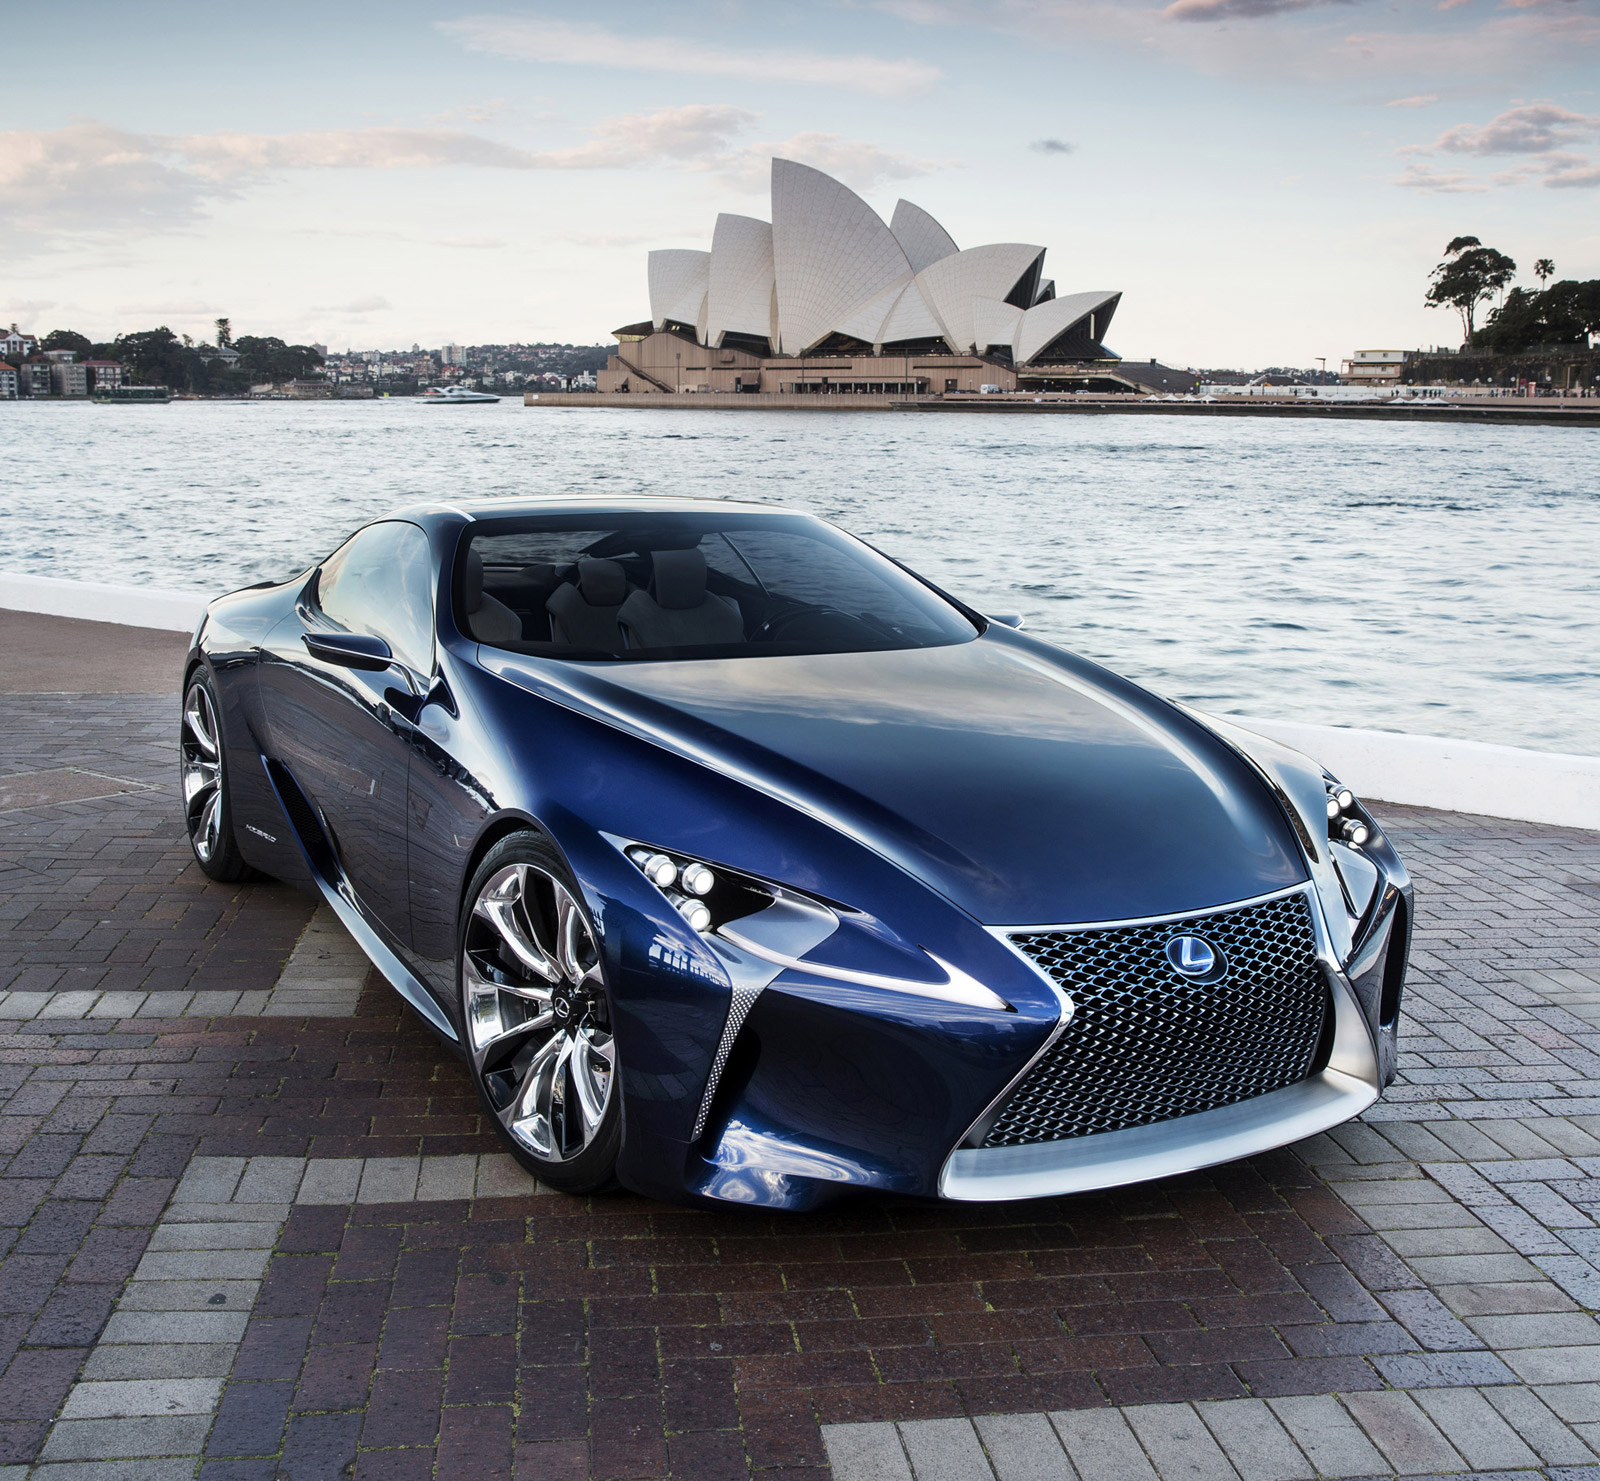 Lexus: Lexus LF-LC Sports Car Could Be Made, Will It Be A Hybrid?